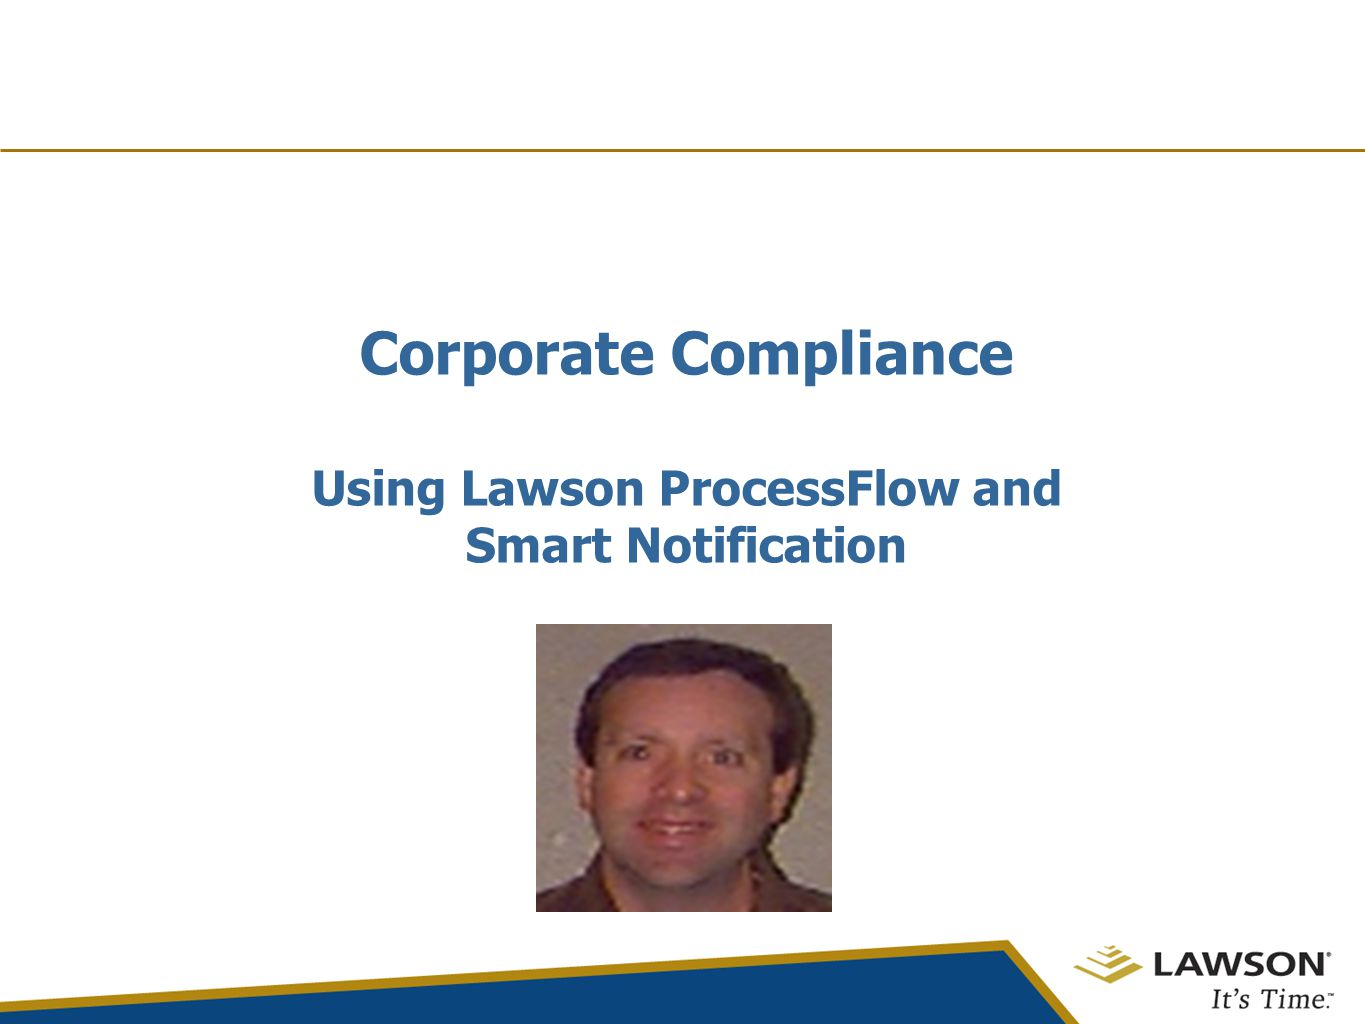 Corporate Compliance Using Lawson ProcessFlow and Smart Notification